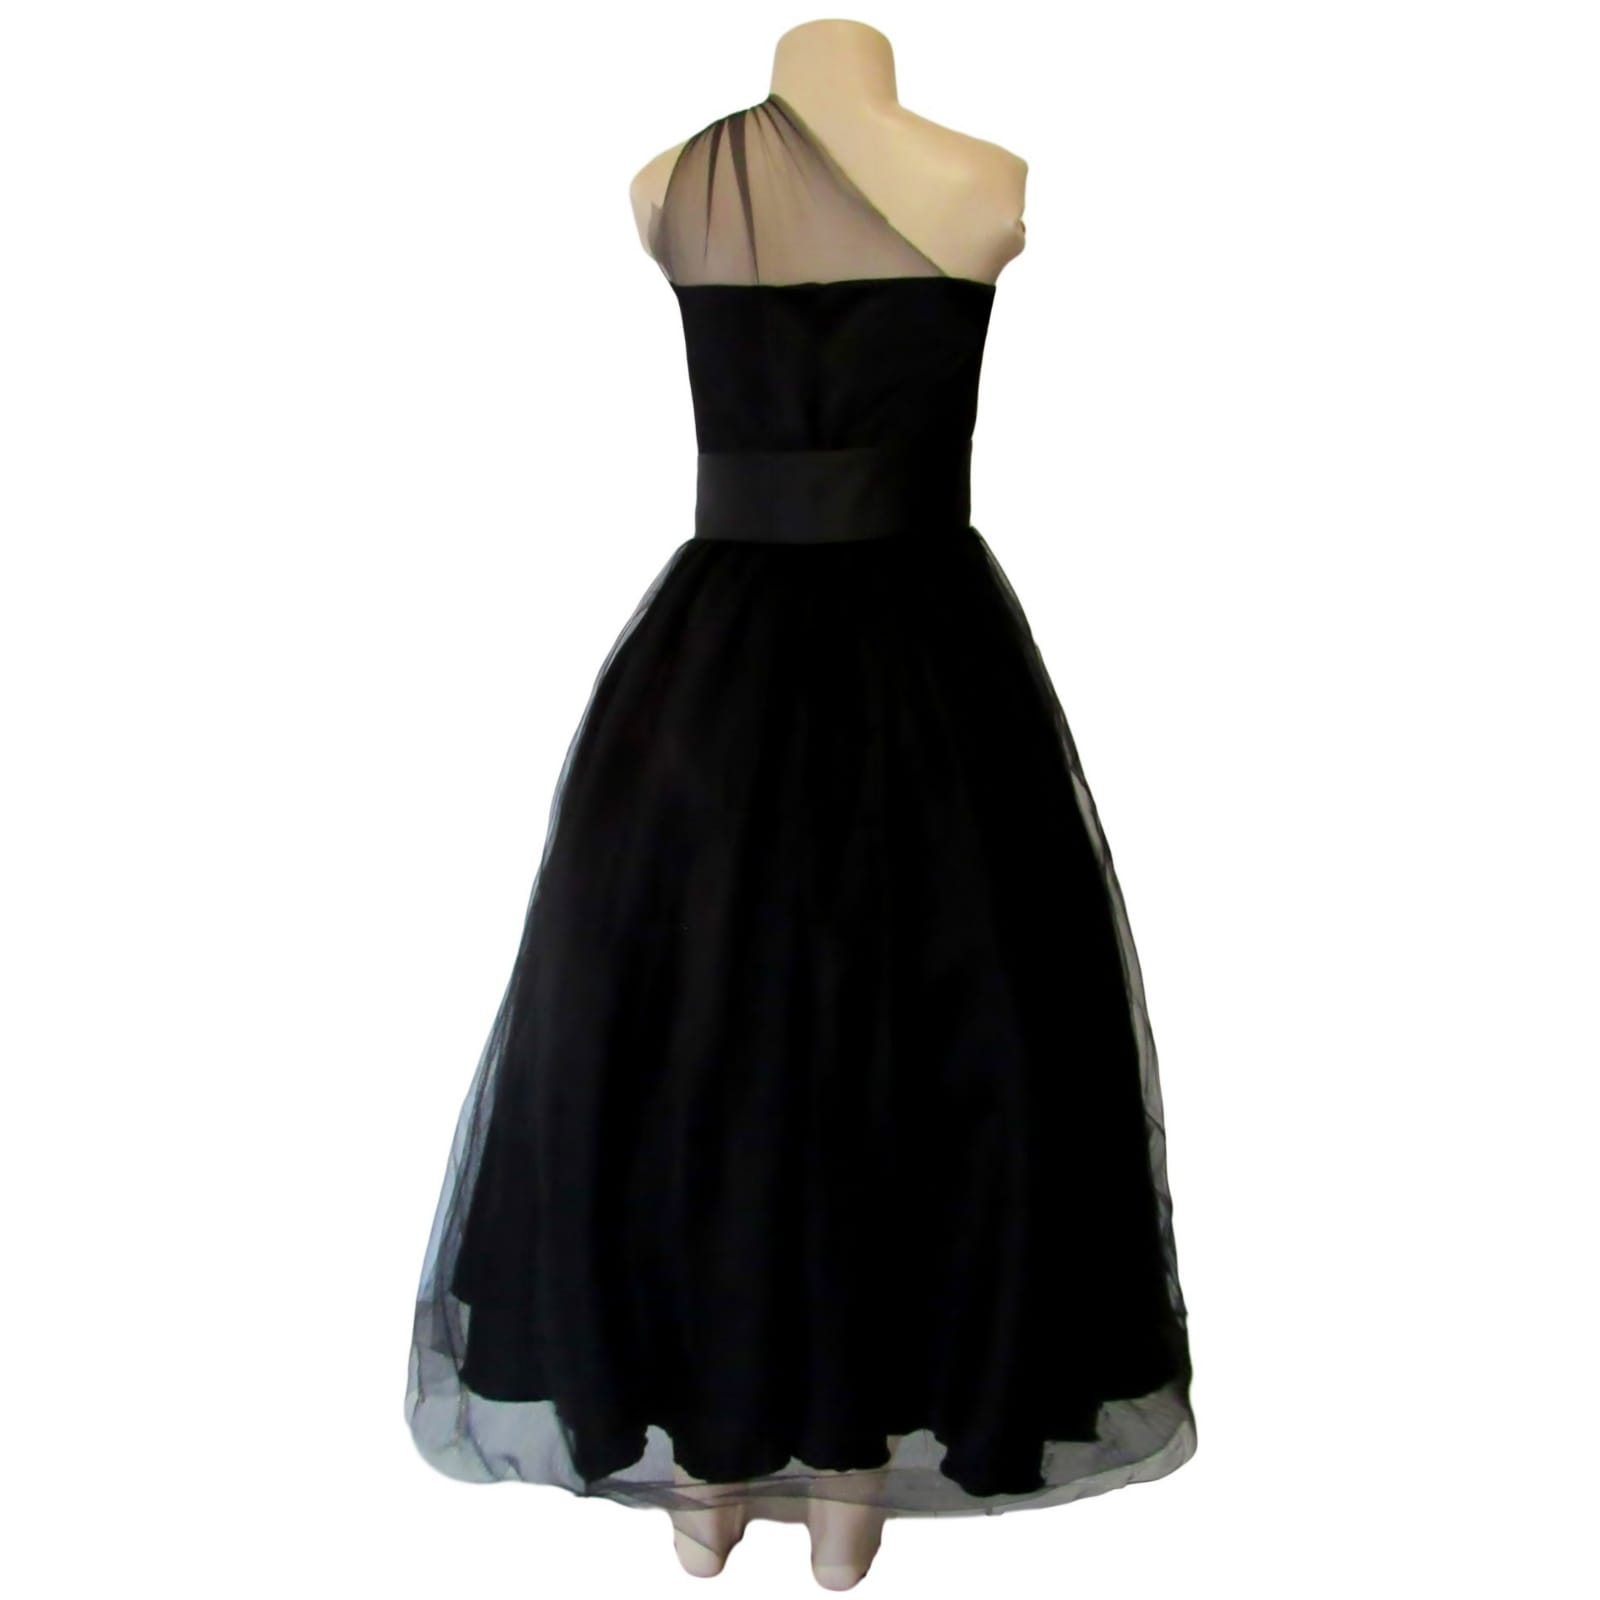 Back ankle length evening party dress 3 back ankle-length evening party dress, overlay with tulle, with a high waisted satin belt. Bodice with tulle creating a one-shoulder design